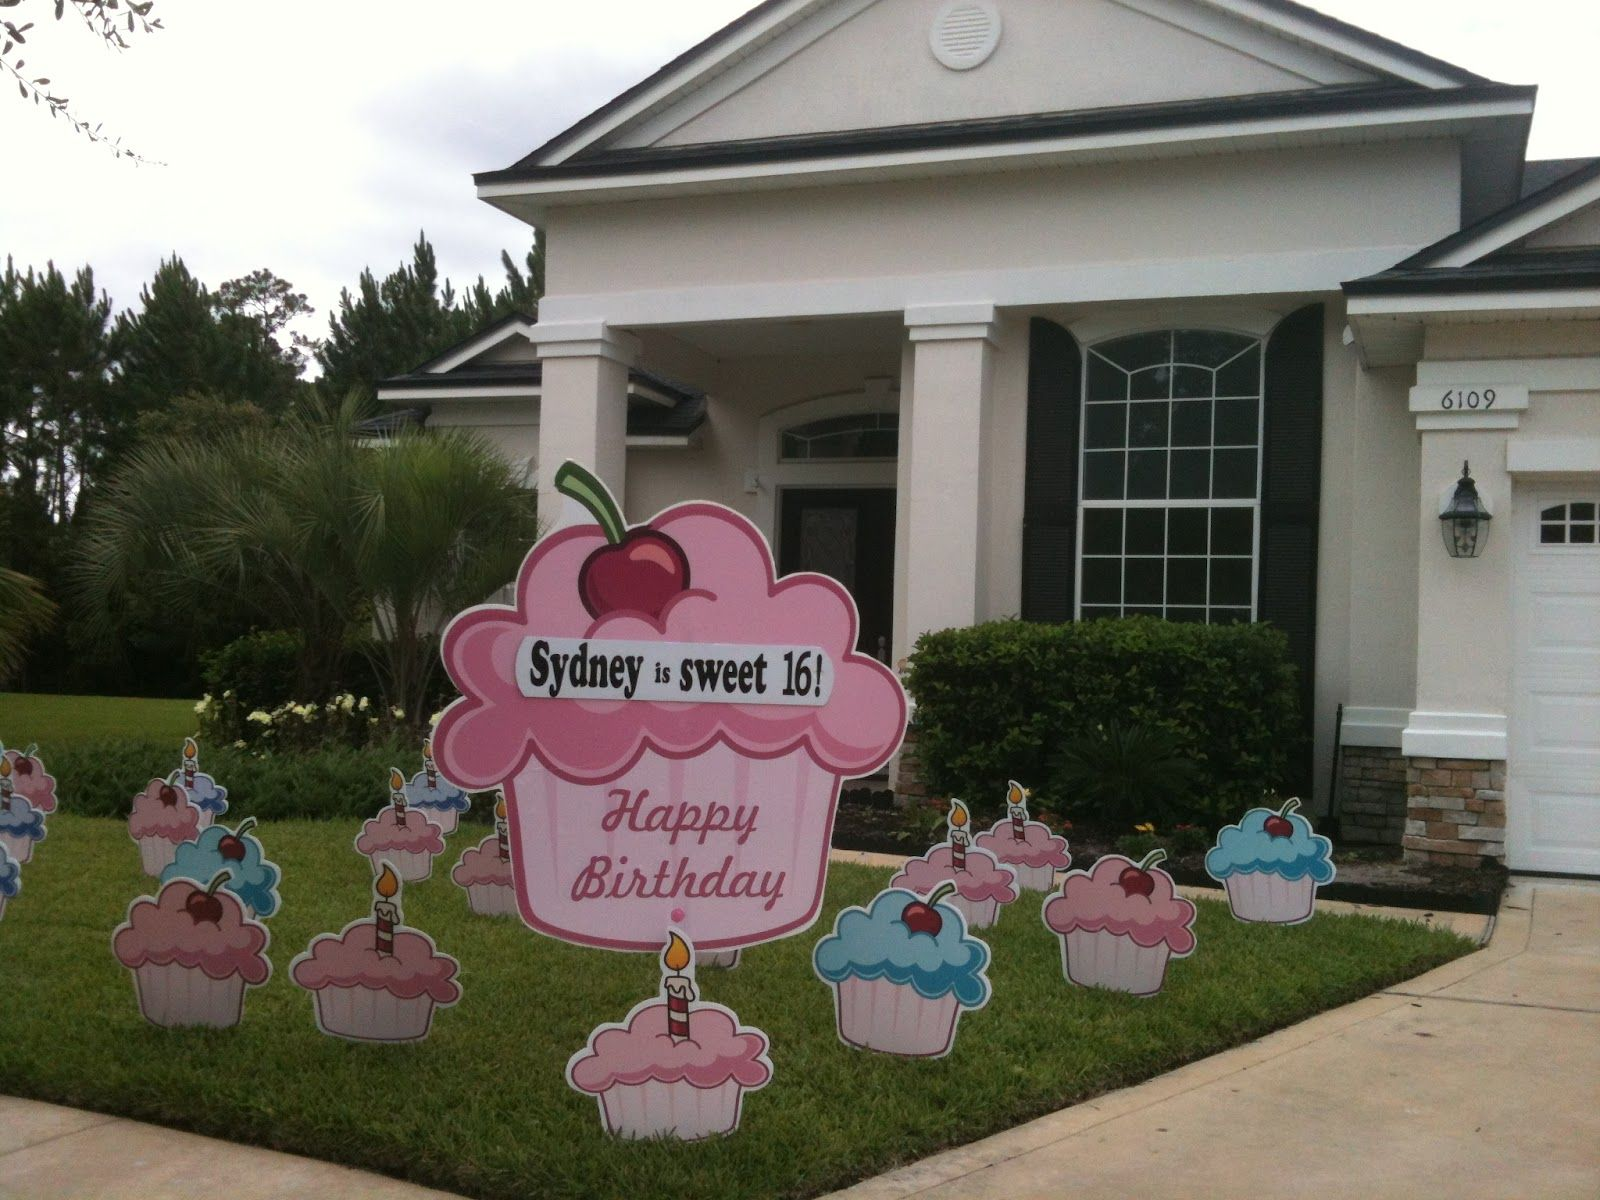 Who Wants A Cupcake Big Yard Card In Jacksonville Delivers A Cupcake That Never Gets Old Wish Your Sweet 16 A Happy Birthday From Big Yard Card Birthday Yard Signs Happy